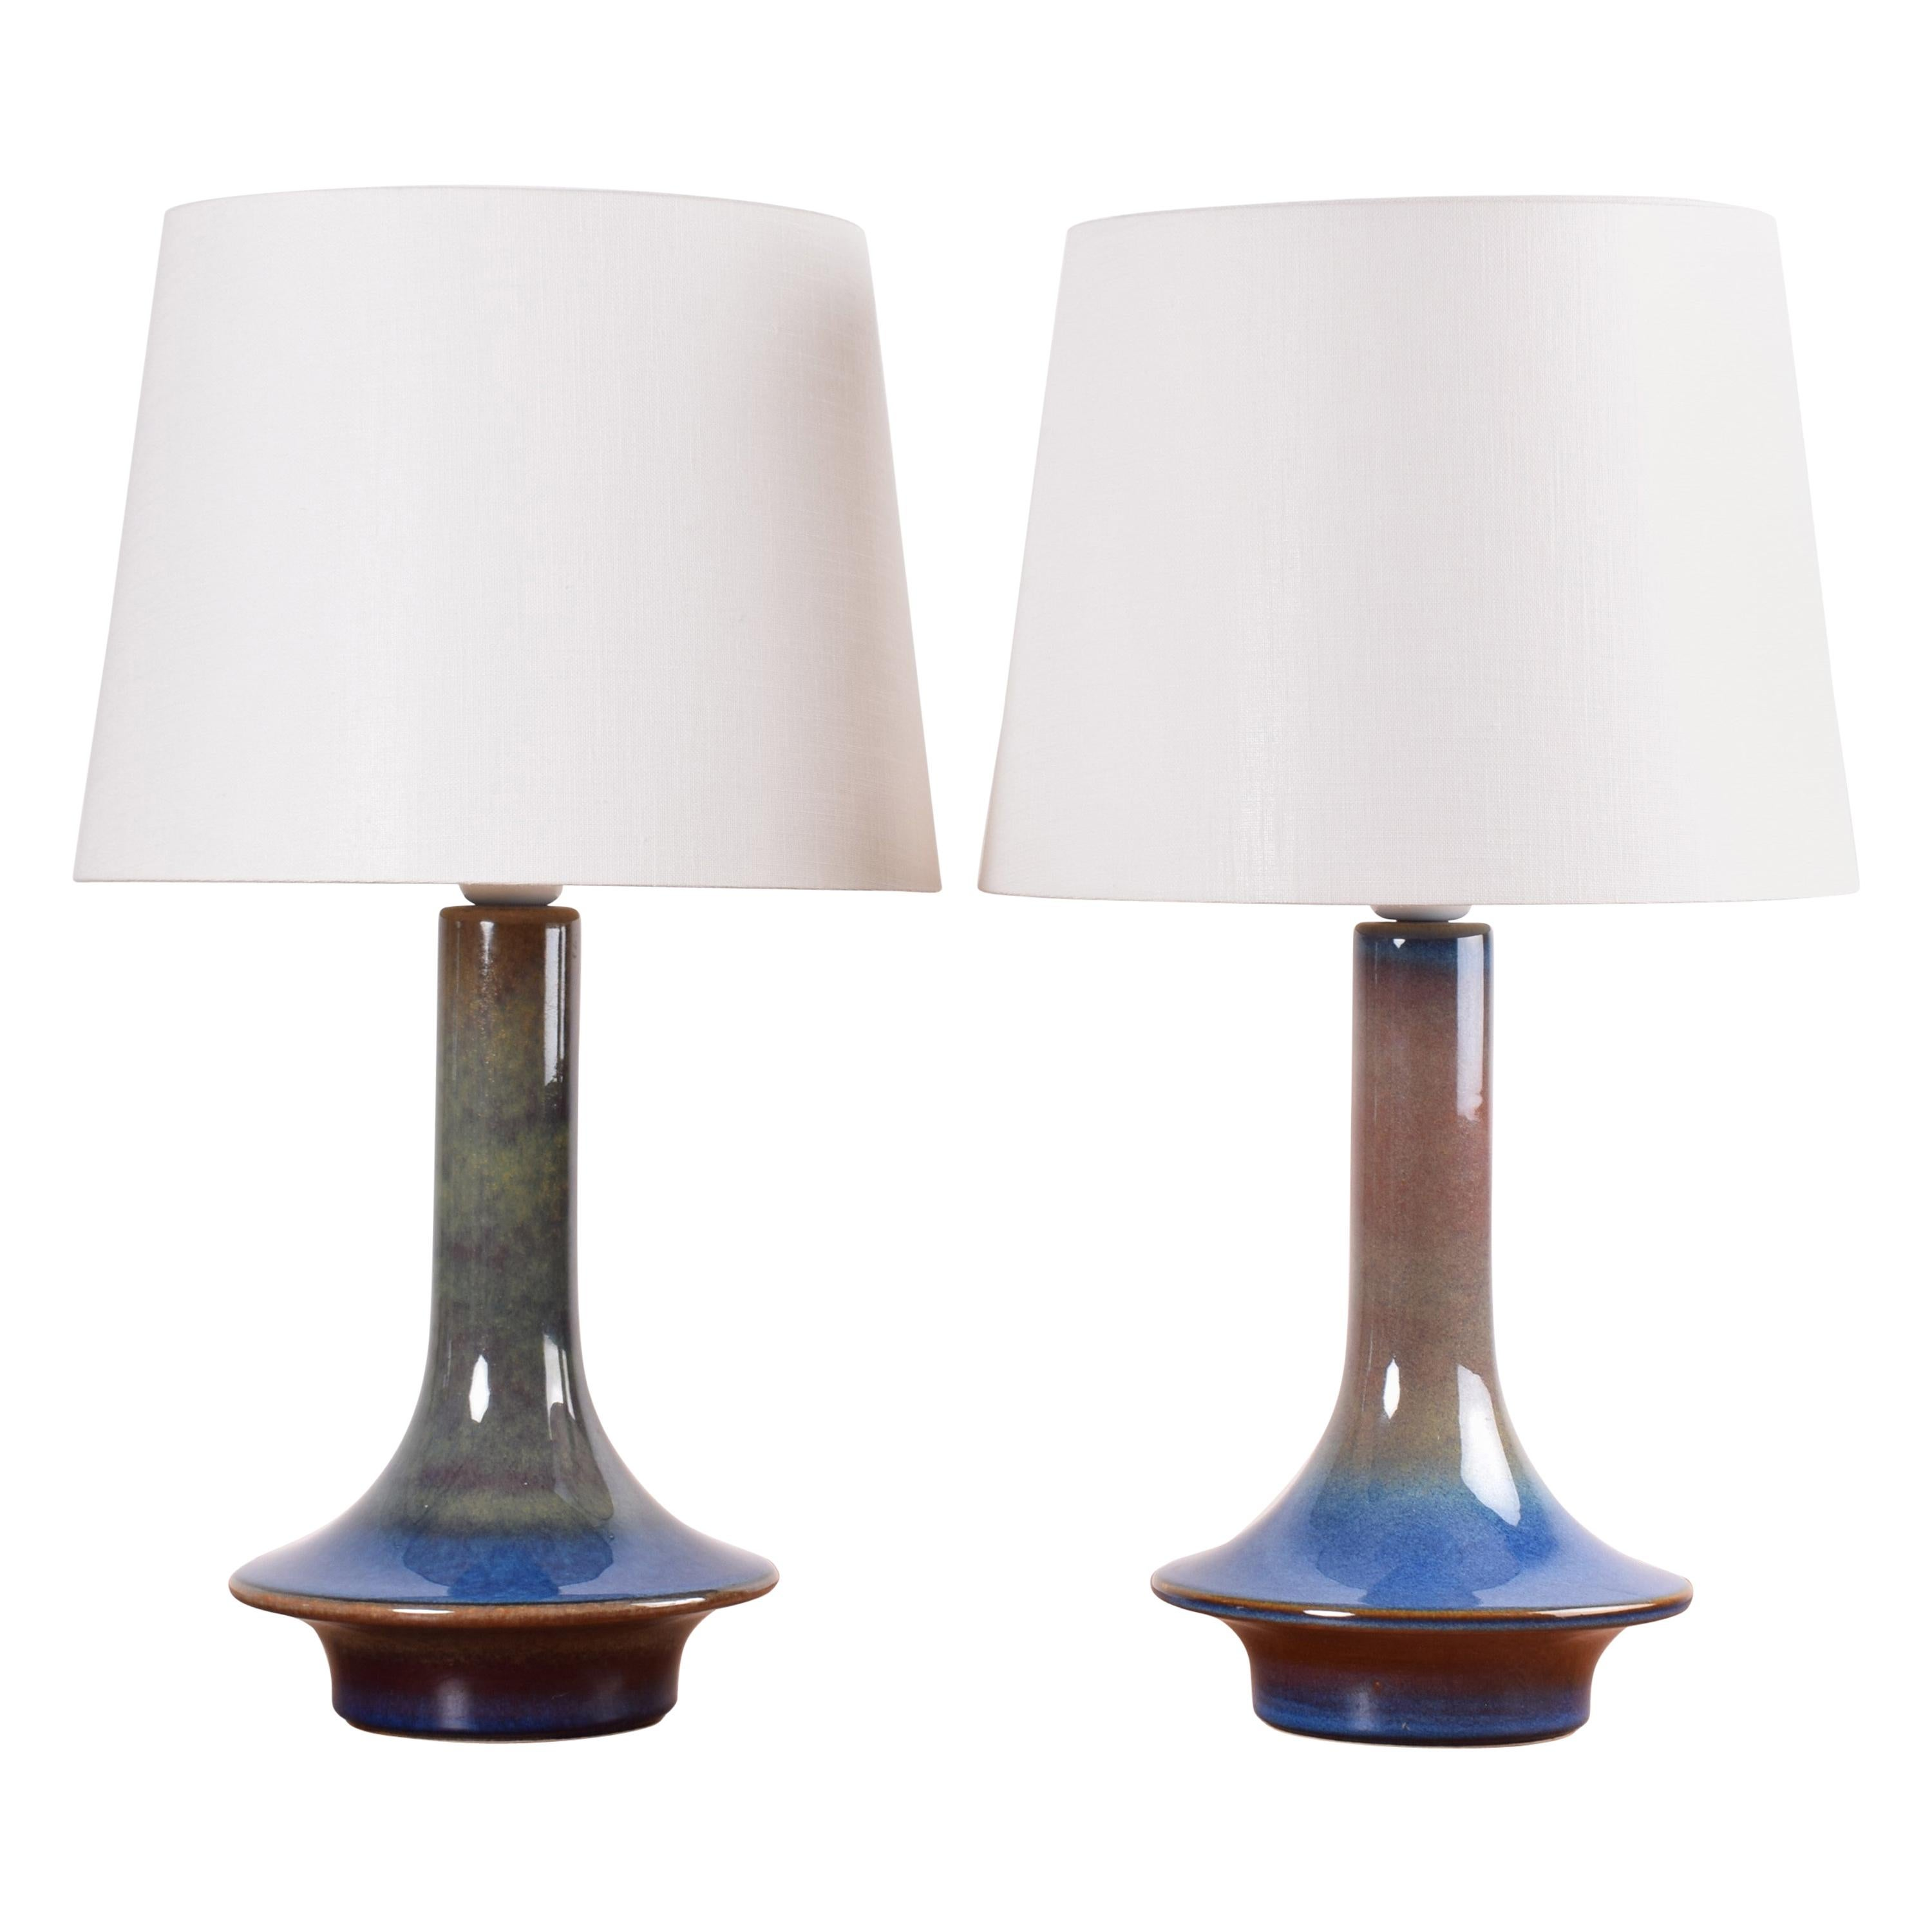 Pair of Blue Danish Modern Sculptural Ceramic Table Lamps from Søholm, 1960s